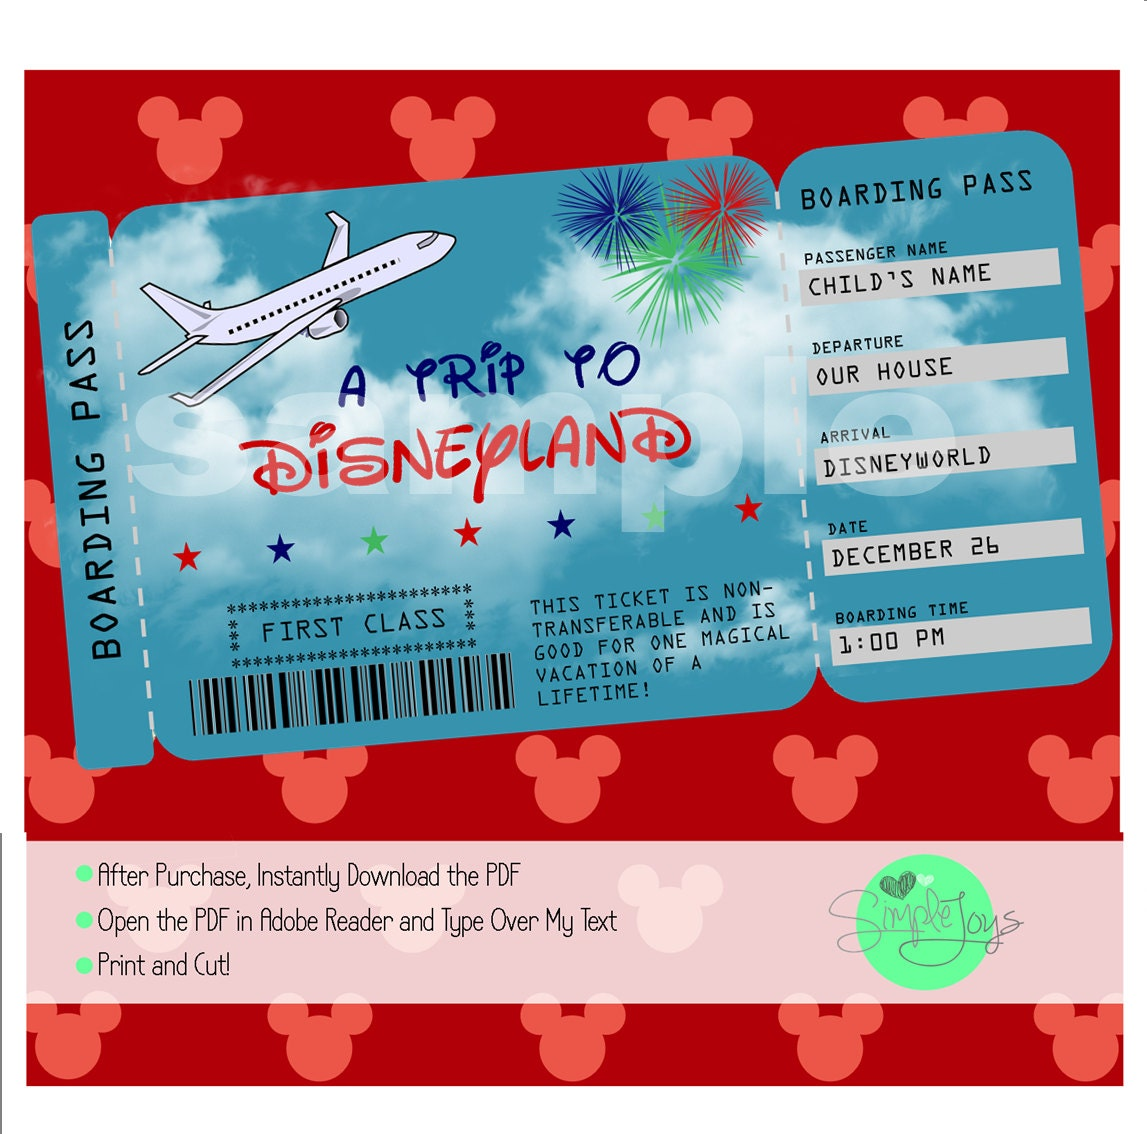 image relating to Printable Tickets known as Printable Ticket towards Disney (Disneyworld/Disneyland) Boarding P, Customizable Template, Electronic Document - Yourself Fill and Print